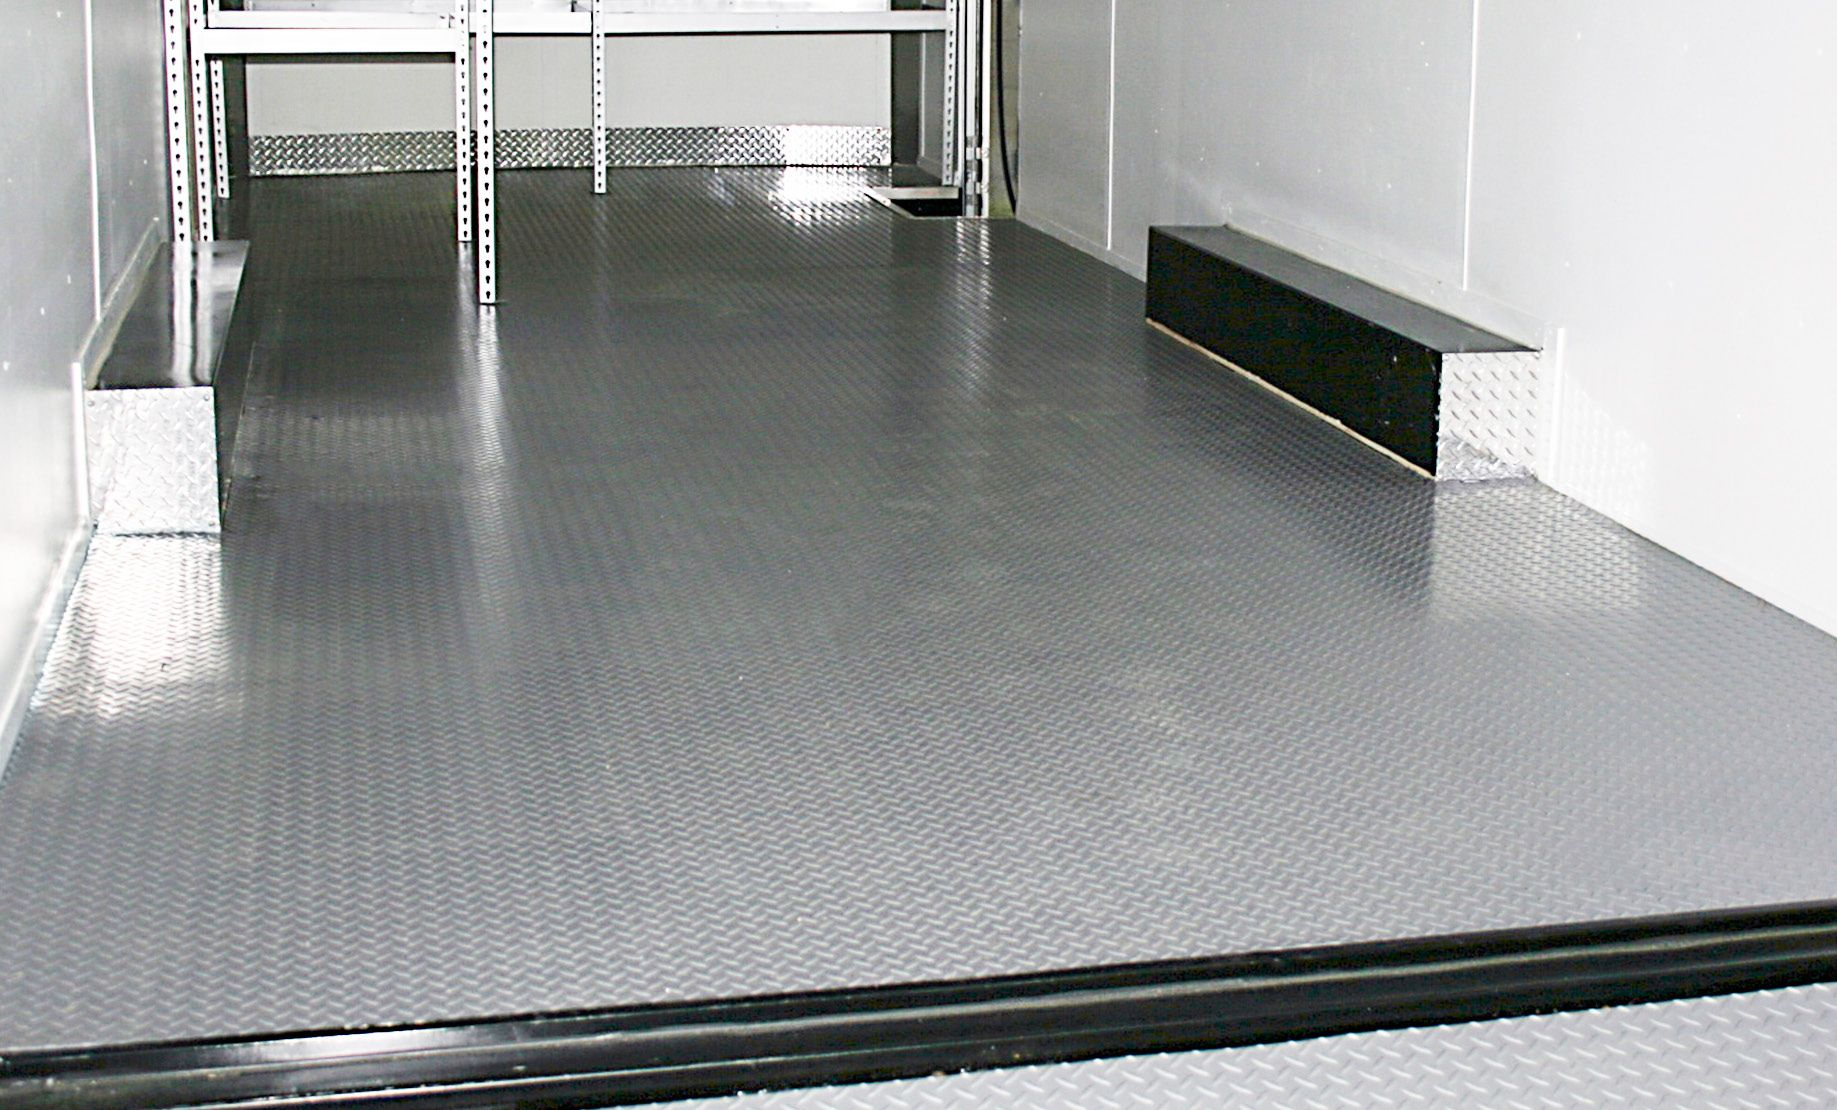 Garage Floor Mats Can Be Sized To Fit Your Needs Garageflooring Garage Floor Tiles Garage Floor Mats Flooring